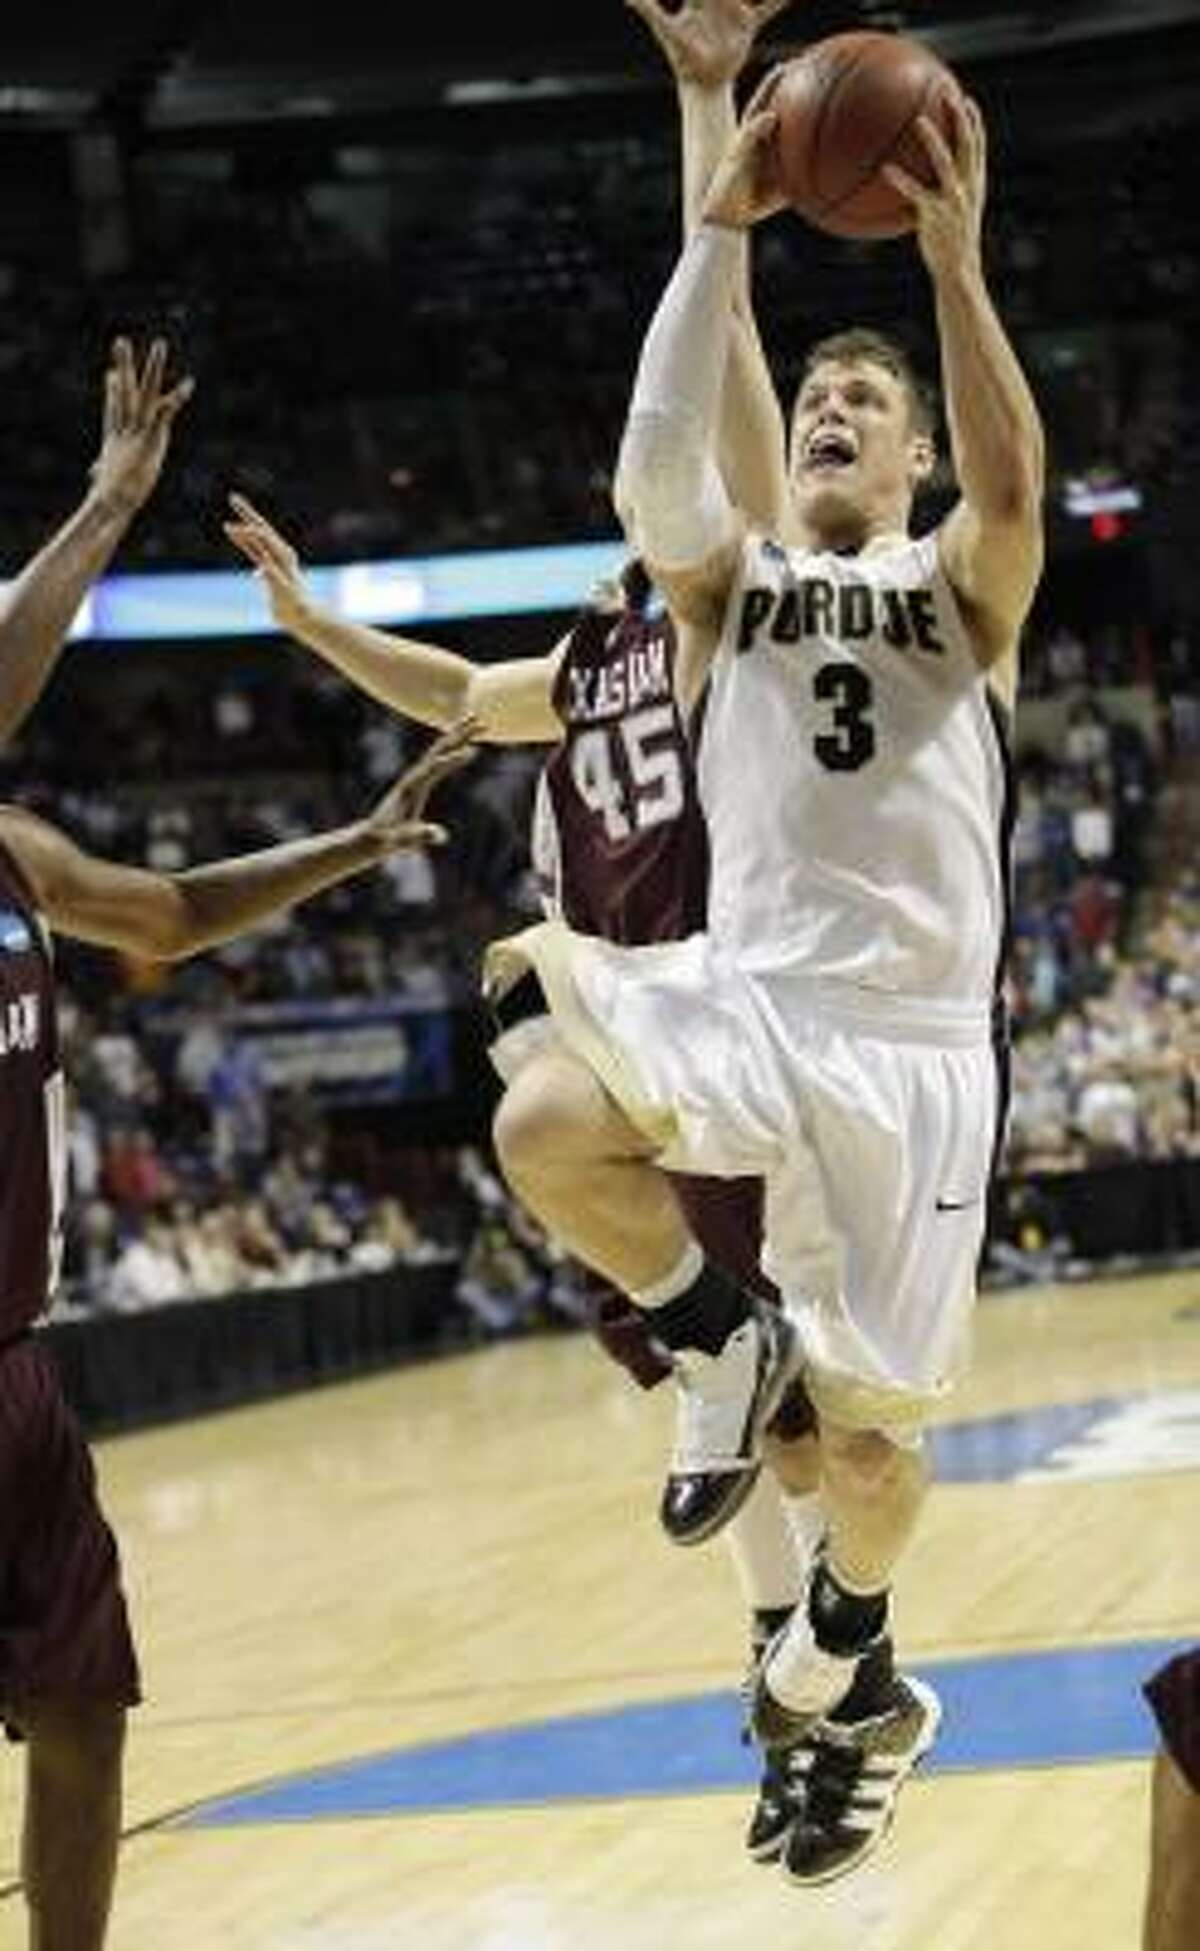 Purdue's Chris Kramer goes in for the game-winnnig basket past the defense of Texas A&M's Nathan Walkup (45) in overtime.